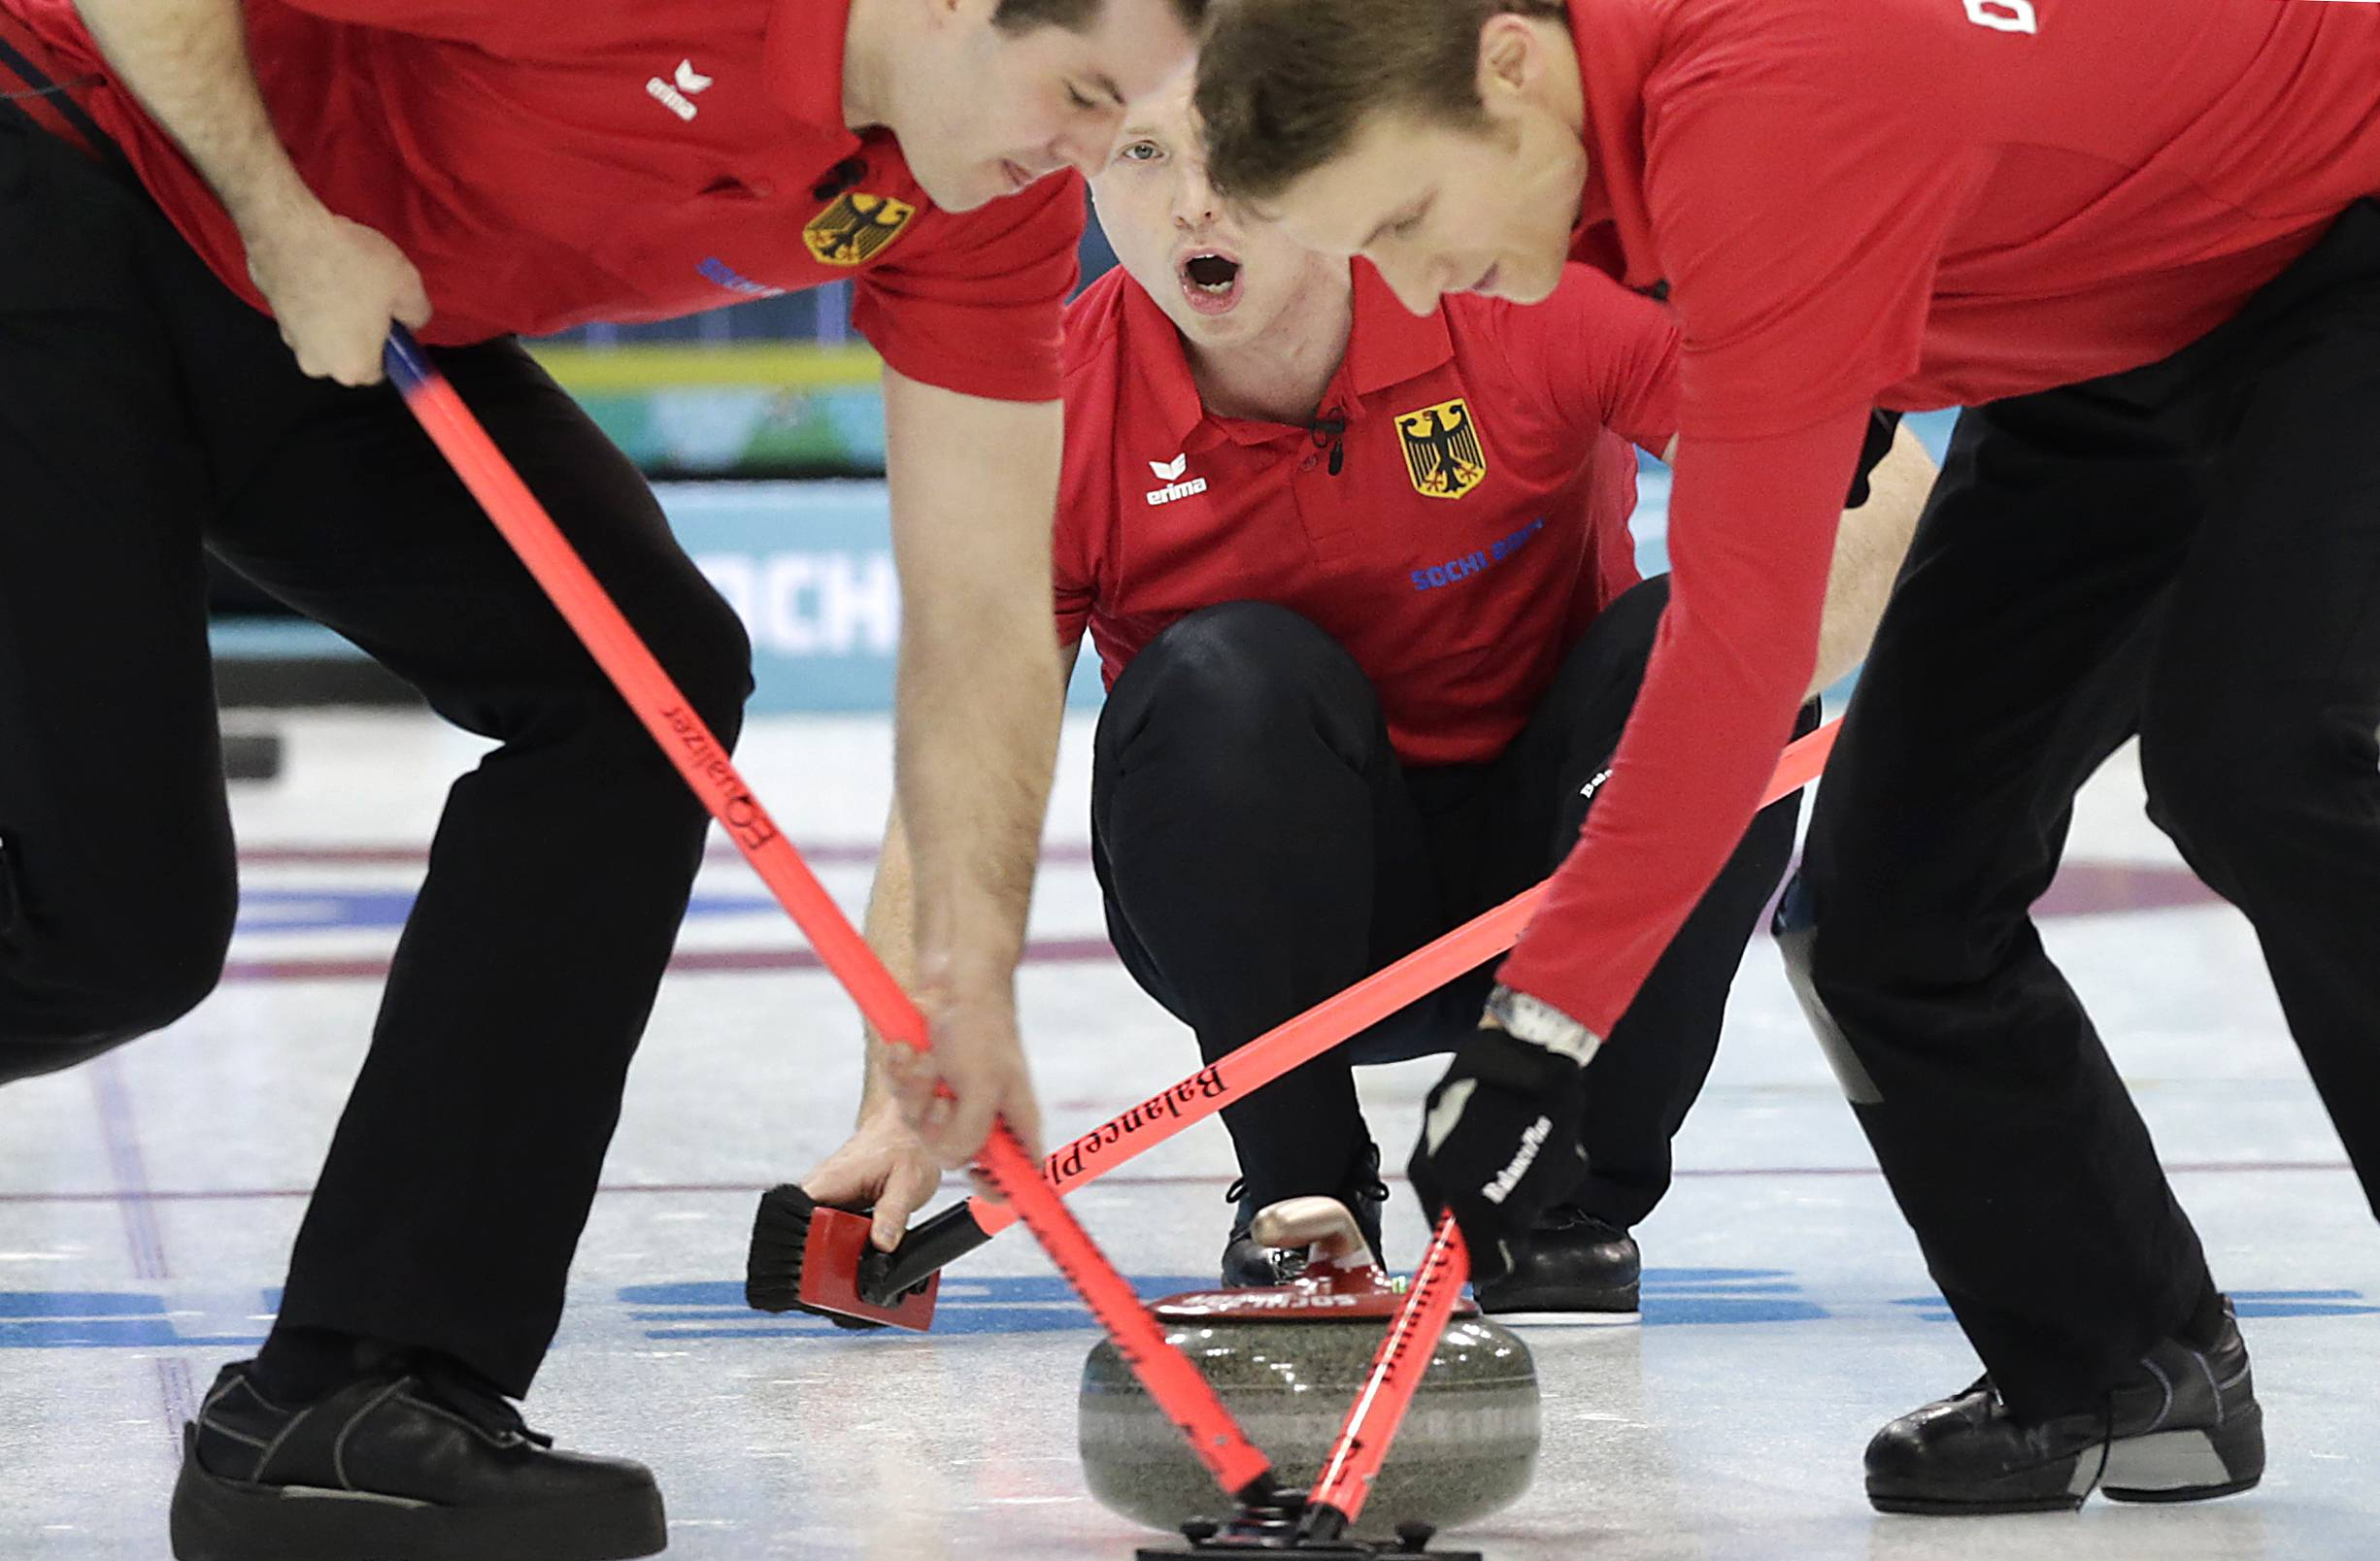 Germany's Christopher Bartsch, center, shouts instructions to his sweepers Felix Schulze, left, and Peter Rickmers, right, during the men's curling competition against Canada.